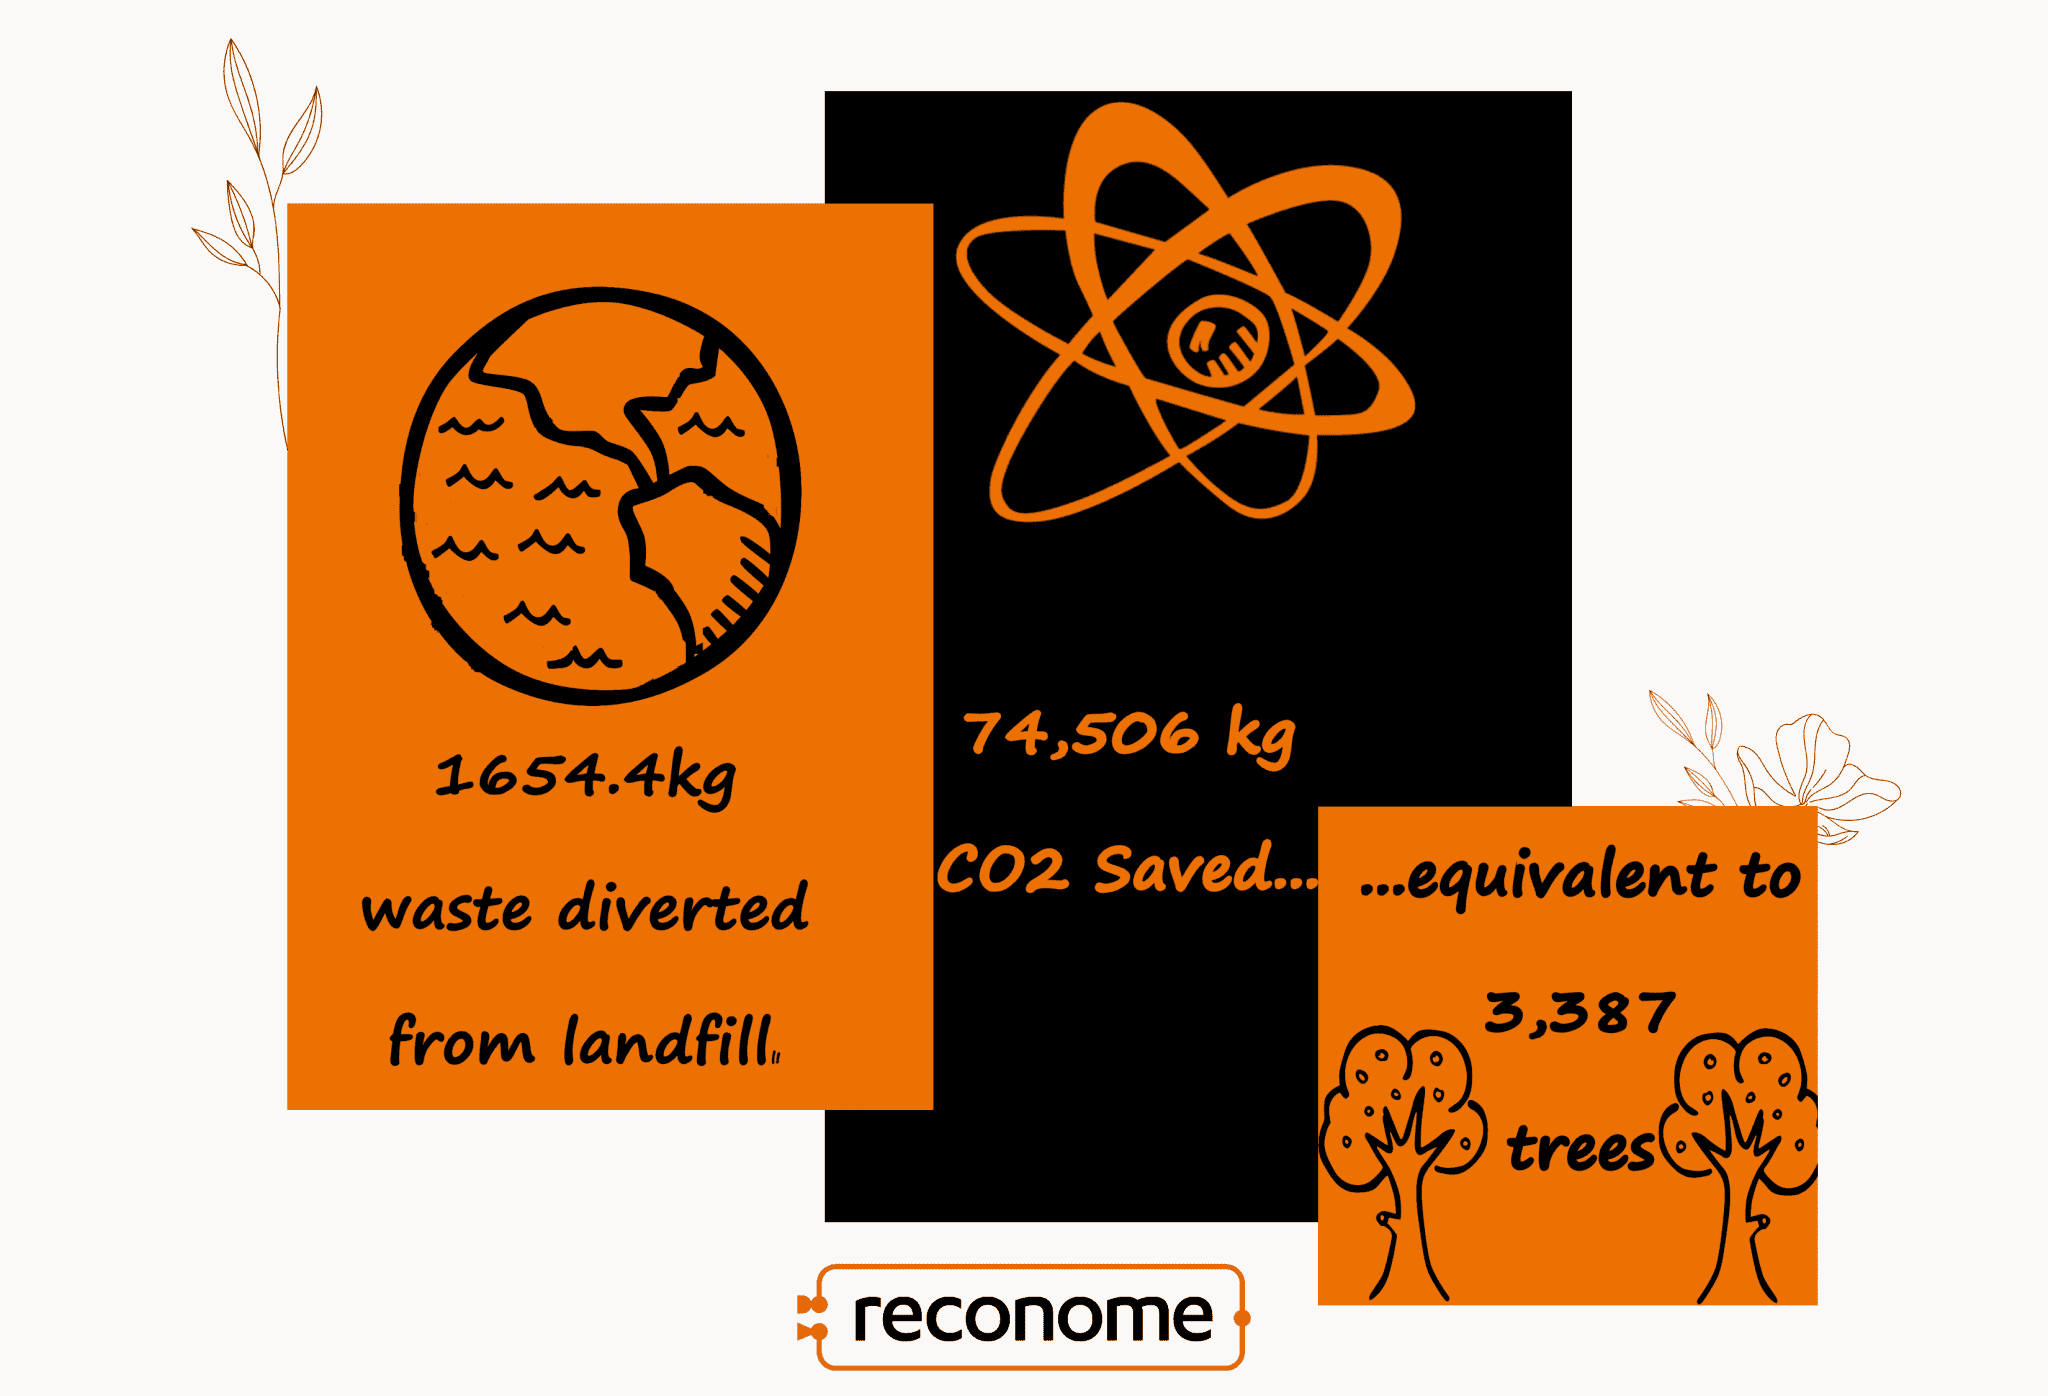 image containing the words 1654.4kg waste diverted from landfill saving 74,506kg of CO2 equivalent to 3,387 trees